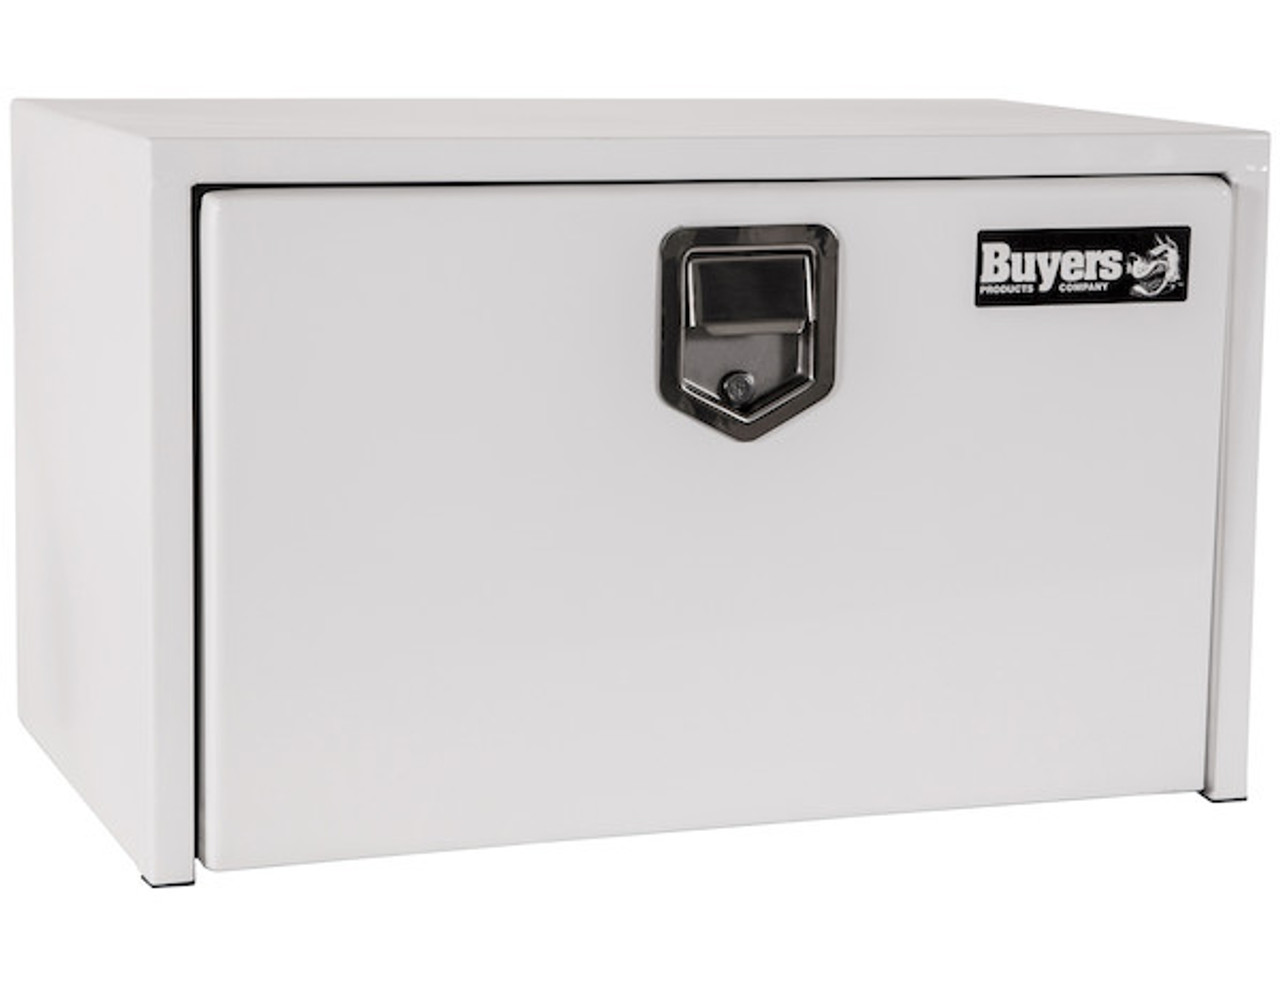 """1702200 BUYERS PRODUCTS WHITE STEEL UNDERBODY TRUCK TOOLBOX WITH PADDLE LATCH 18""""HX18""""DX24""""W"""